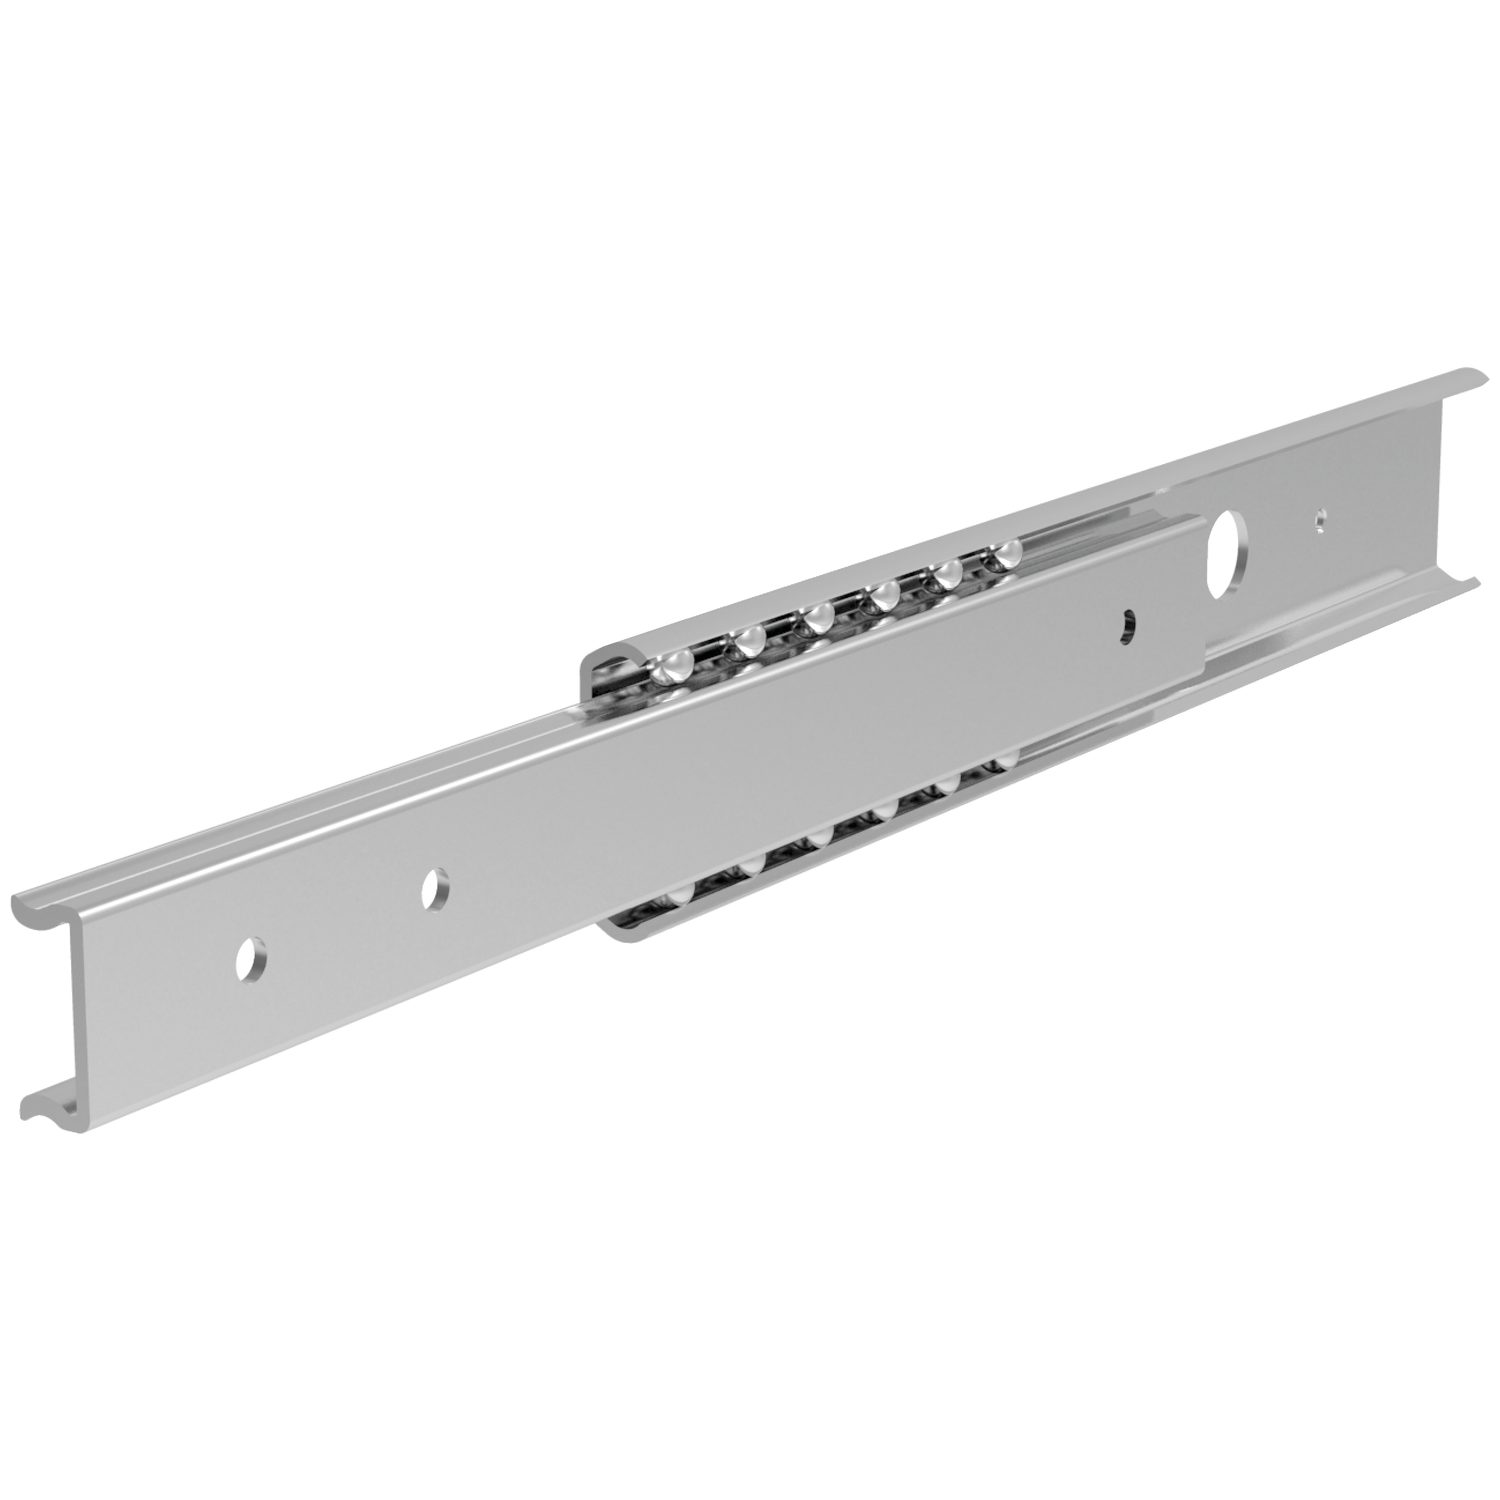 Semi-Telescopic Drawer Slides Galvanized steel drawer slides, loads up to 17.5Kg per pair. Hardened steel balls with plastic ball cage. Fix with M5 countersunk screws.